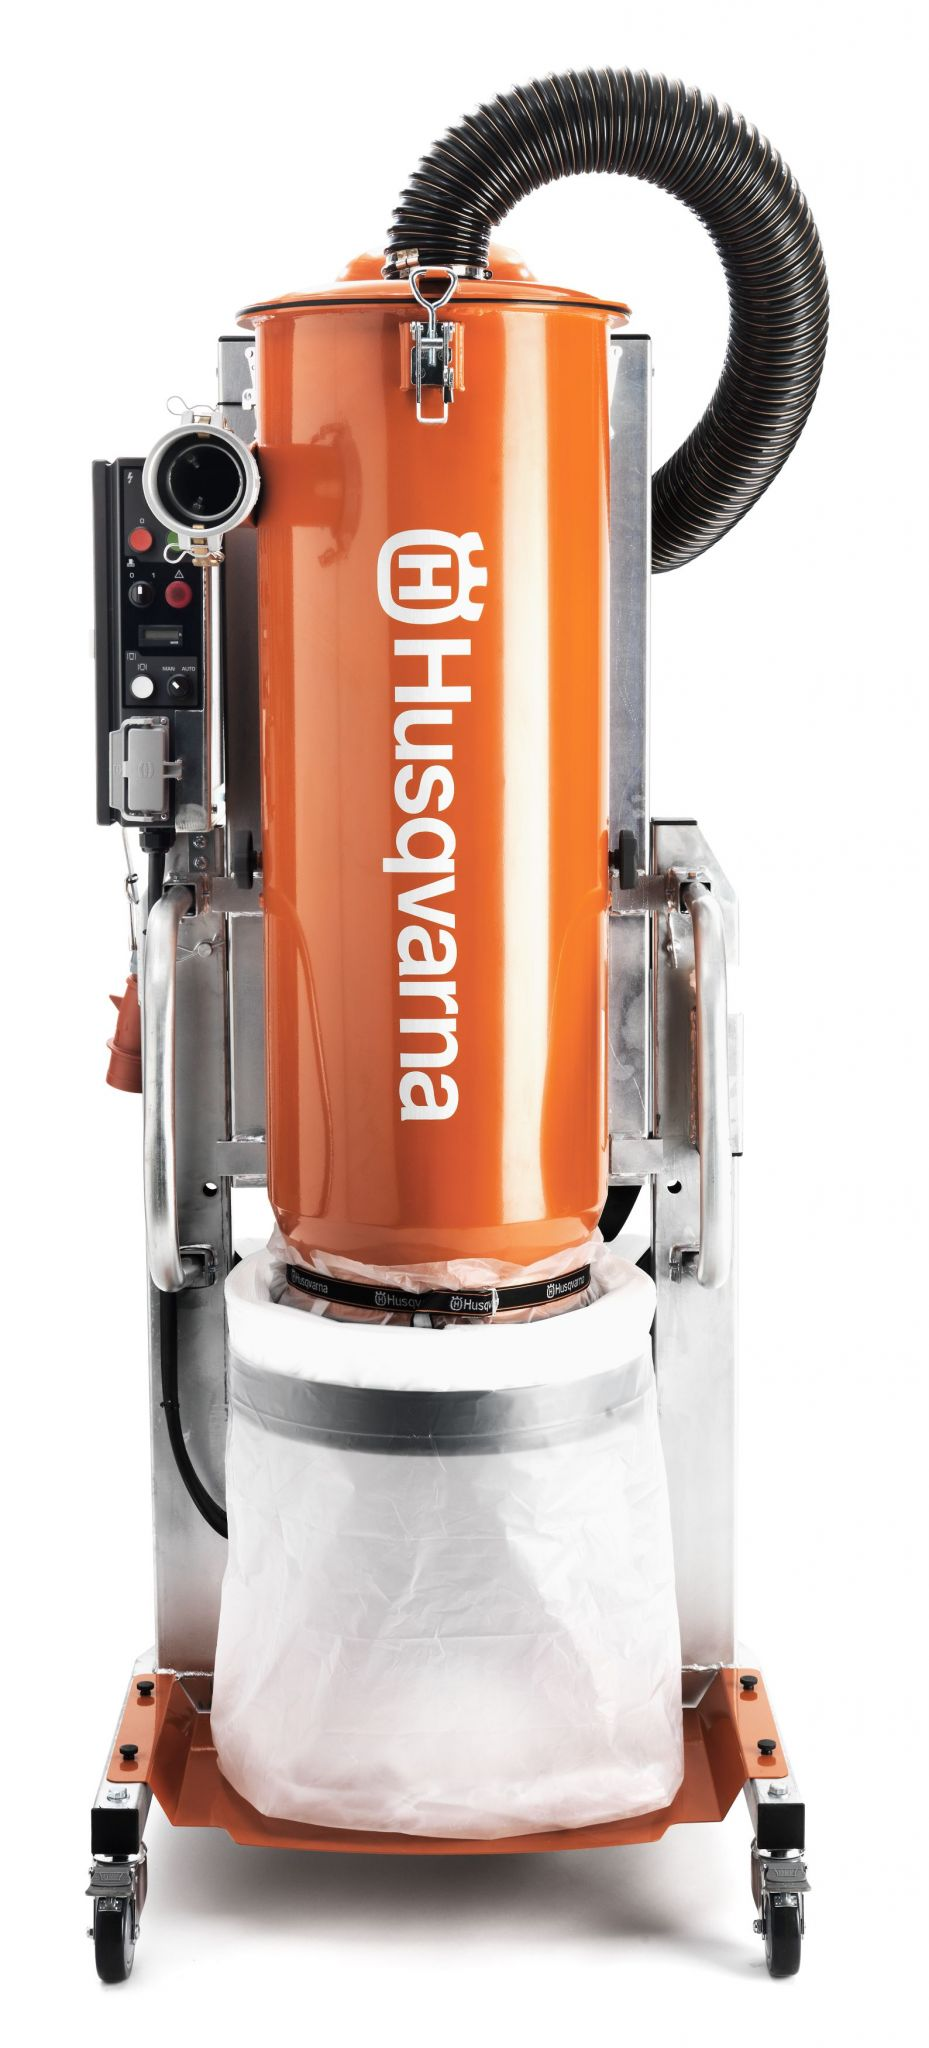 Husqvarna DC6000 dust collector